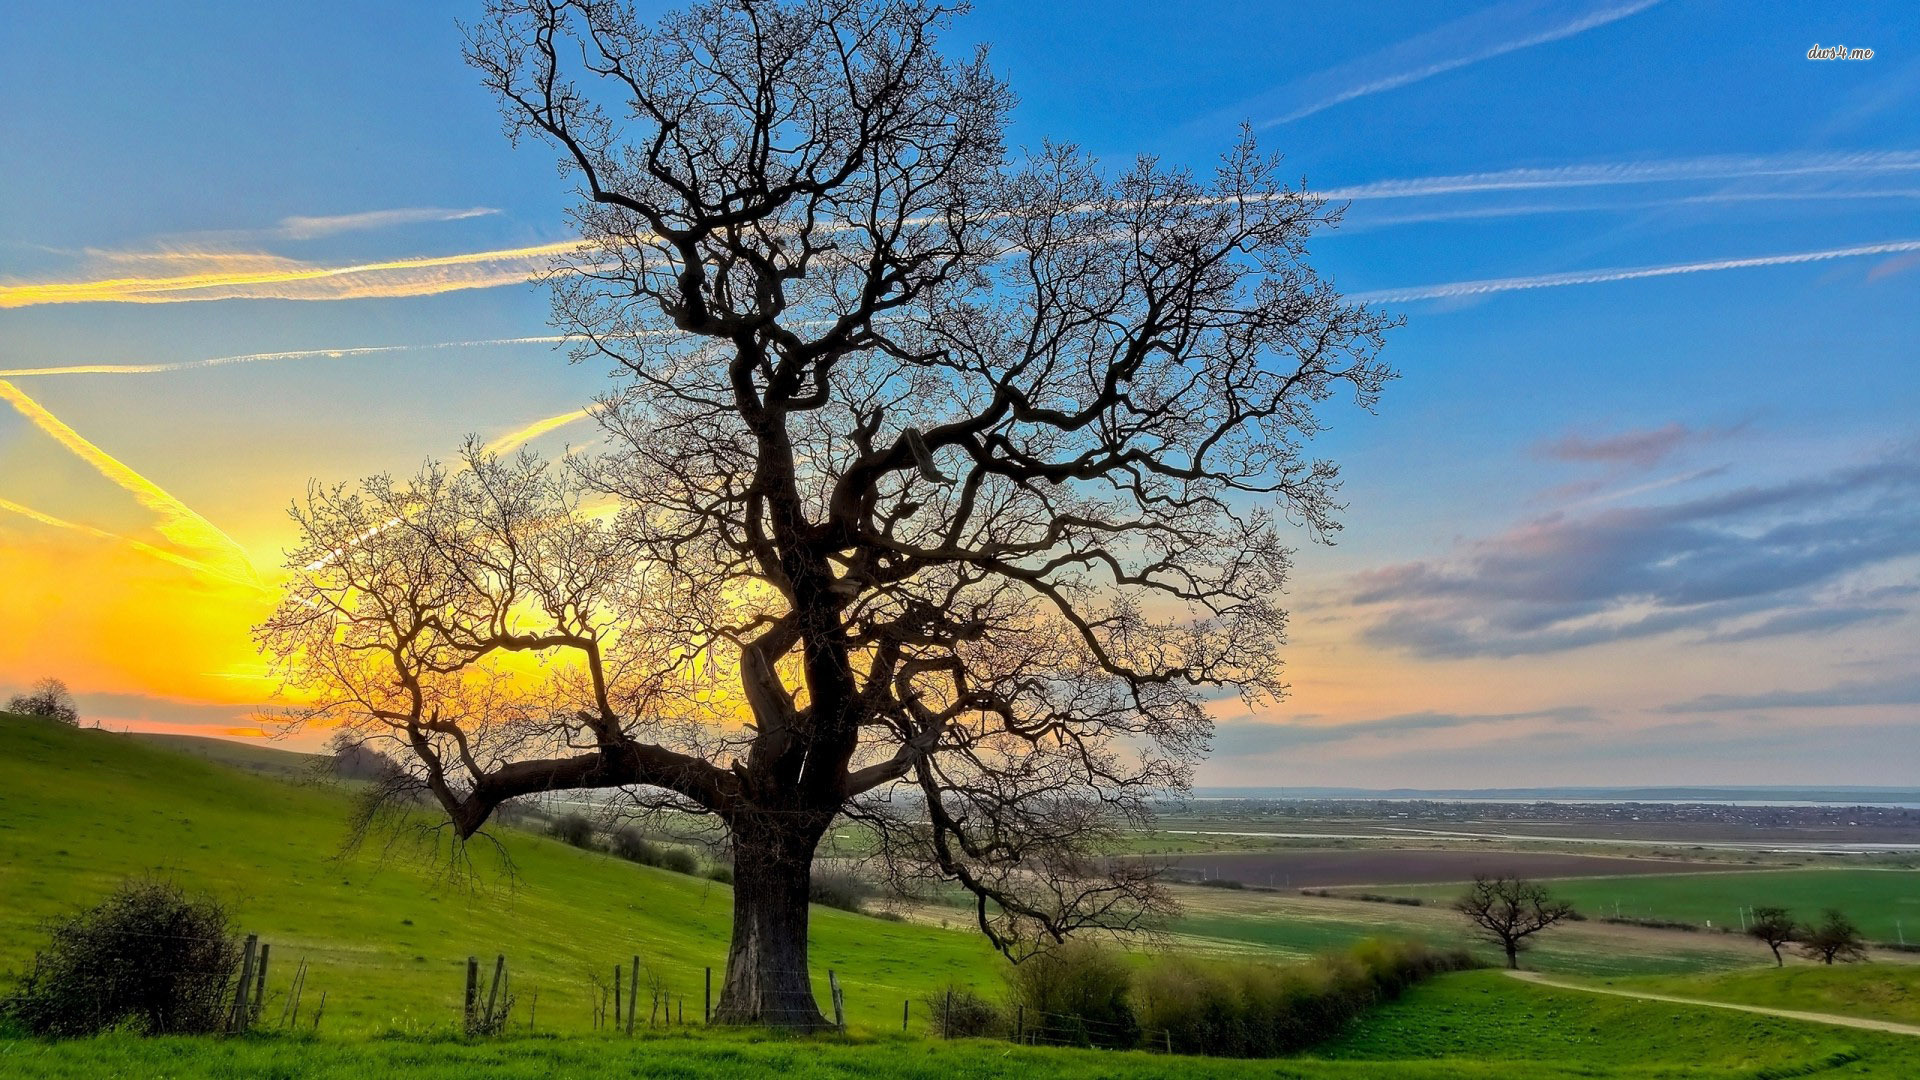 Beautiful Oak Tree wallpaper 1920x1080 29381 1920x1080